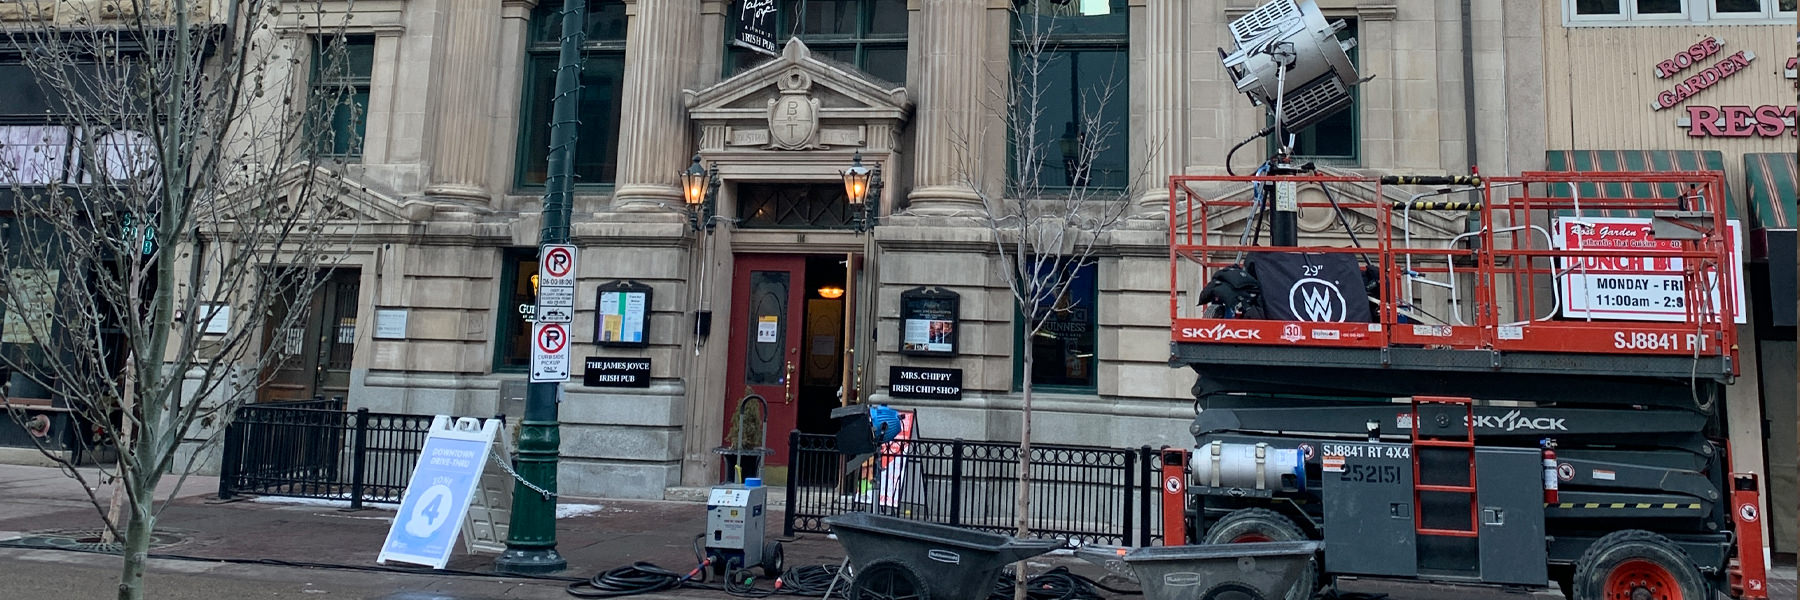 Filming equipment in front of historic calgary building